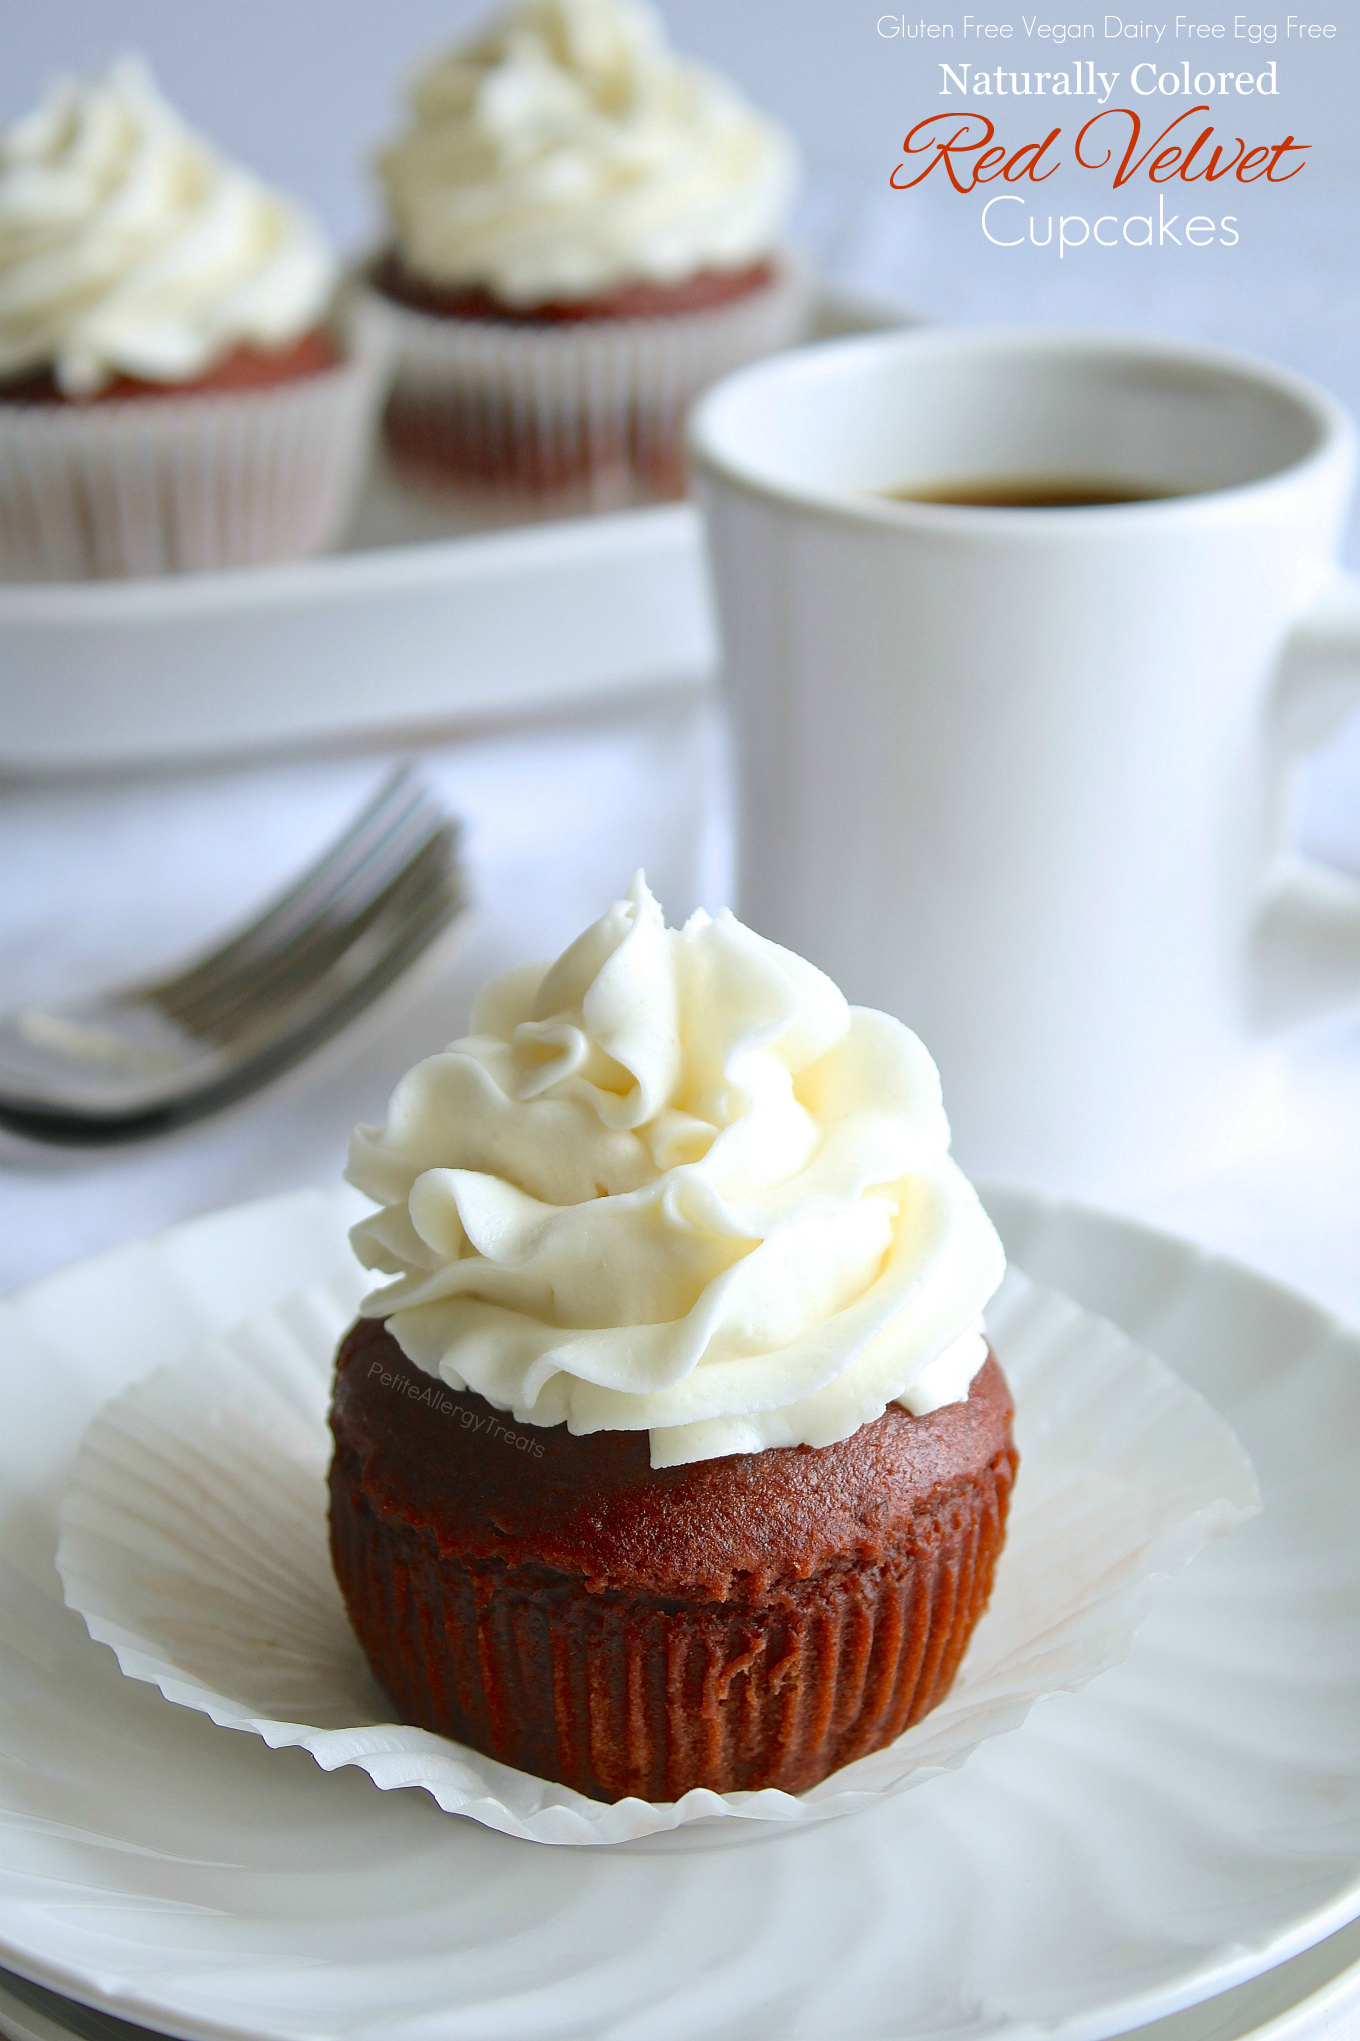 Gluten Free Vegan Red Velvet Cupcakes Recipe- Naturally colored dye-free red velvet cupcakes made dairy free, egg free and Vegan. Food Allergy friendly!